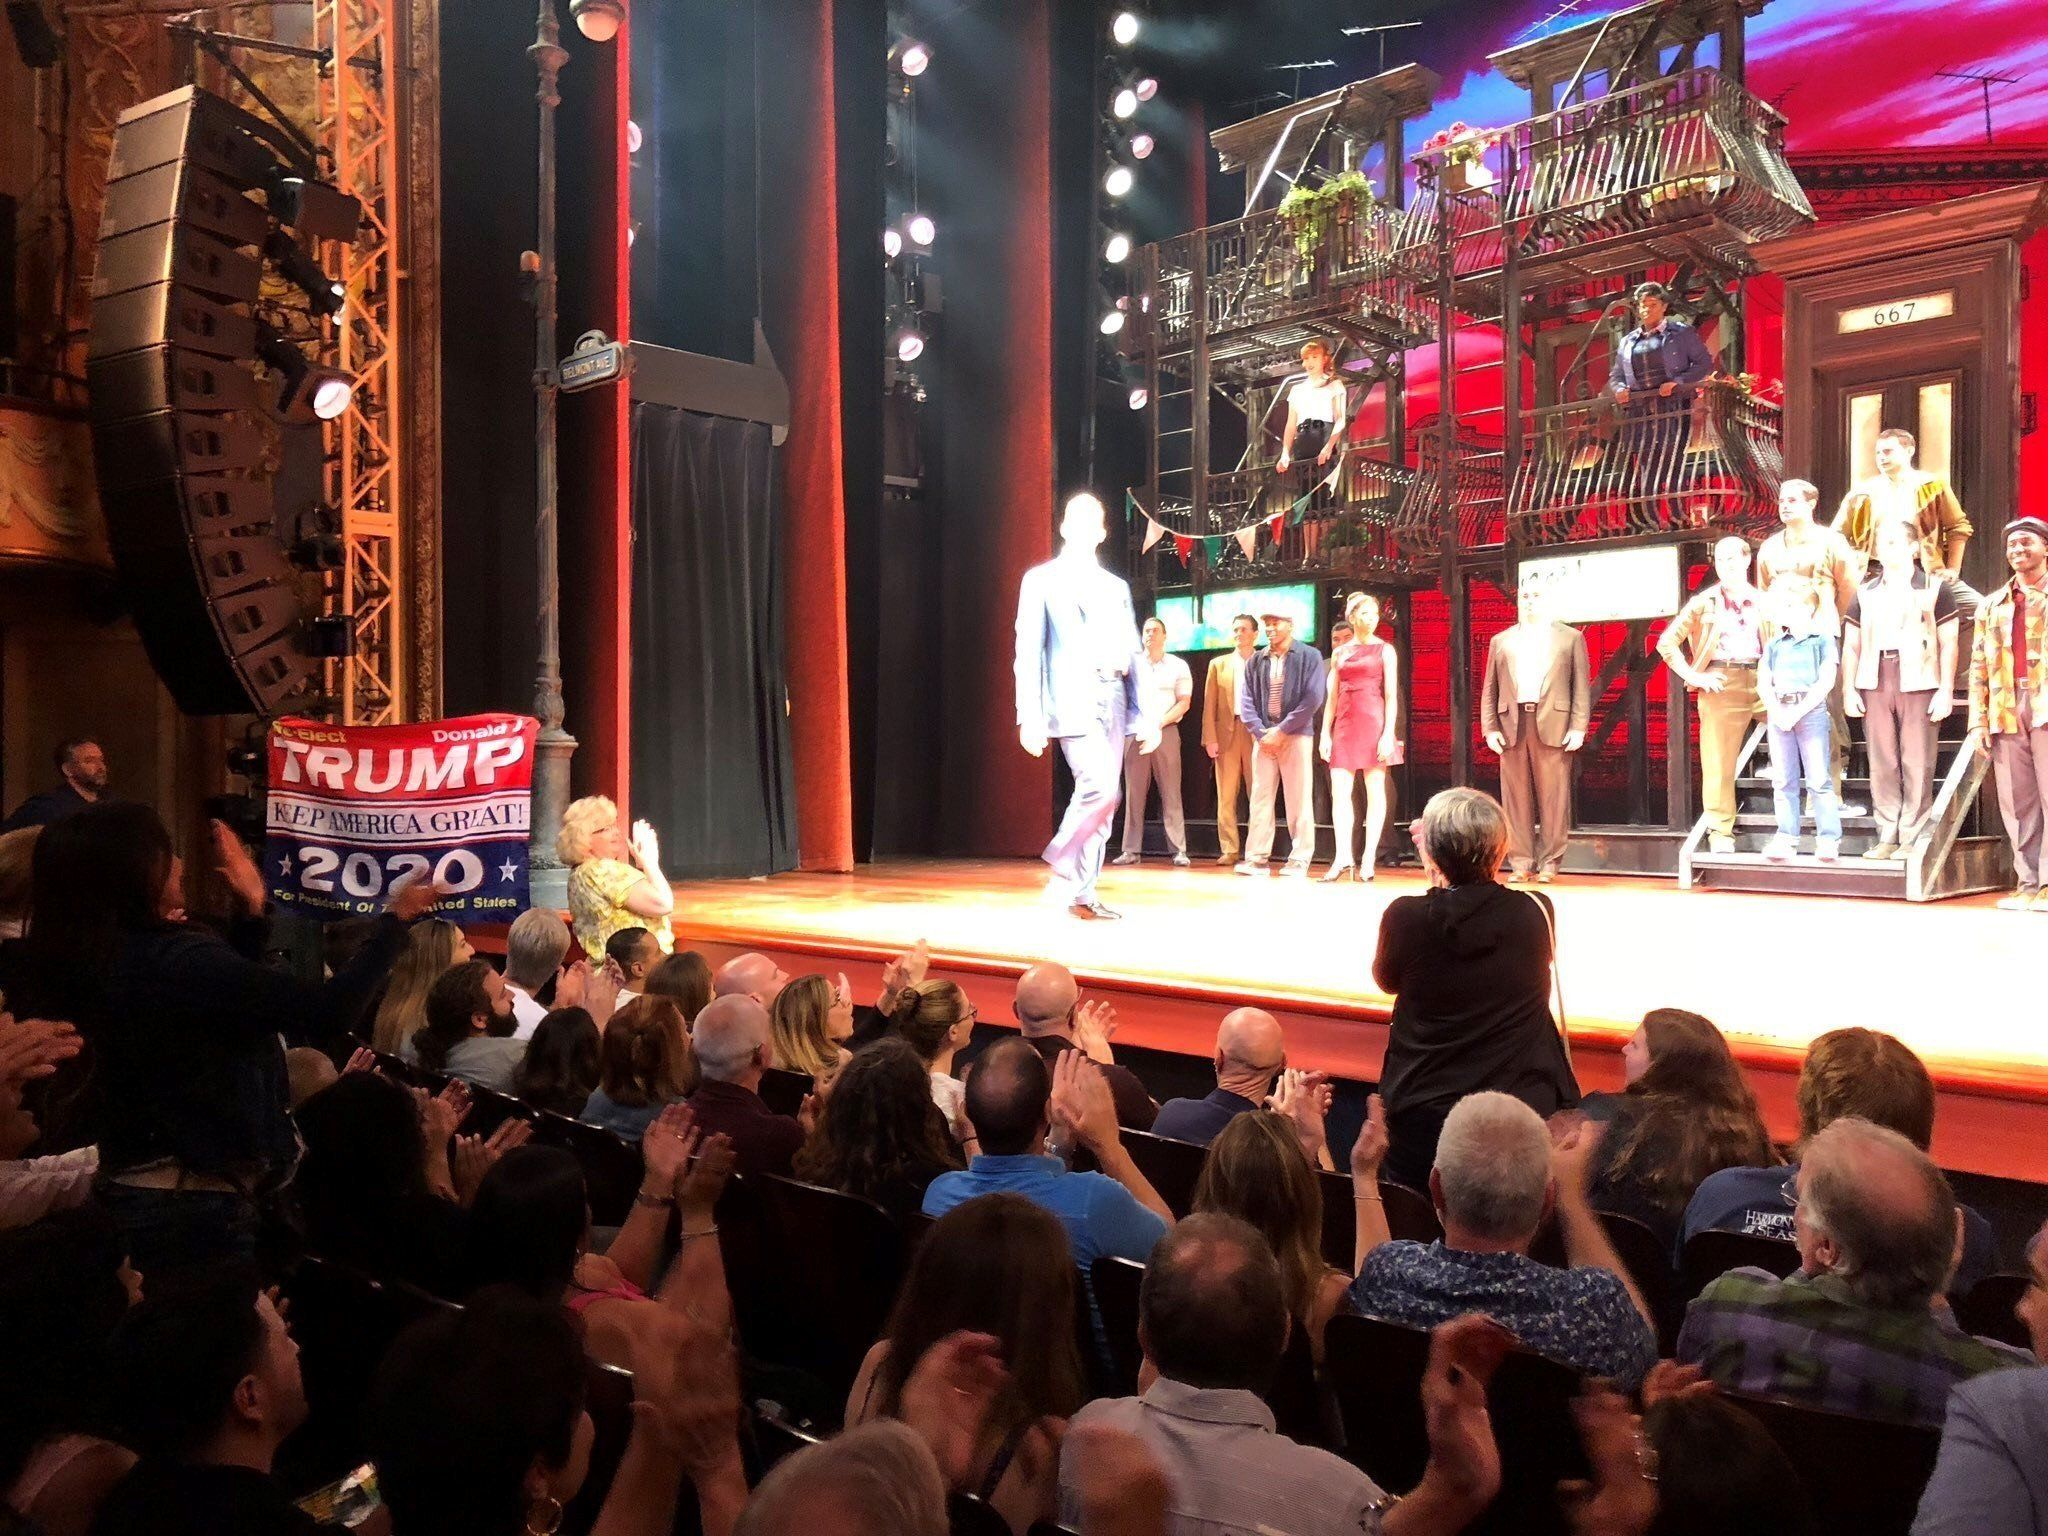 Trump Supporter Interrupts De Niro's Musical with Trump 2020 Flag